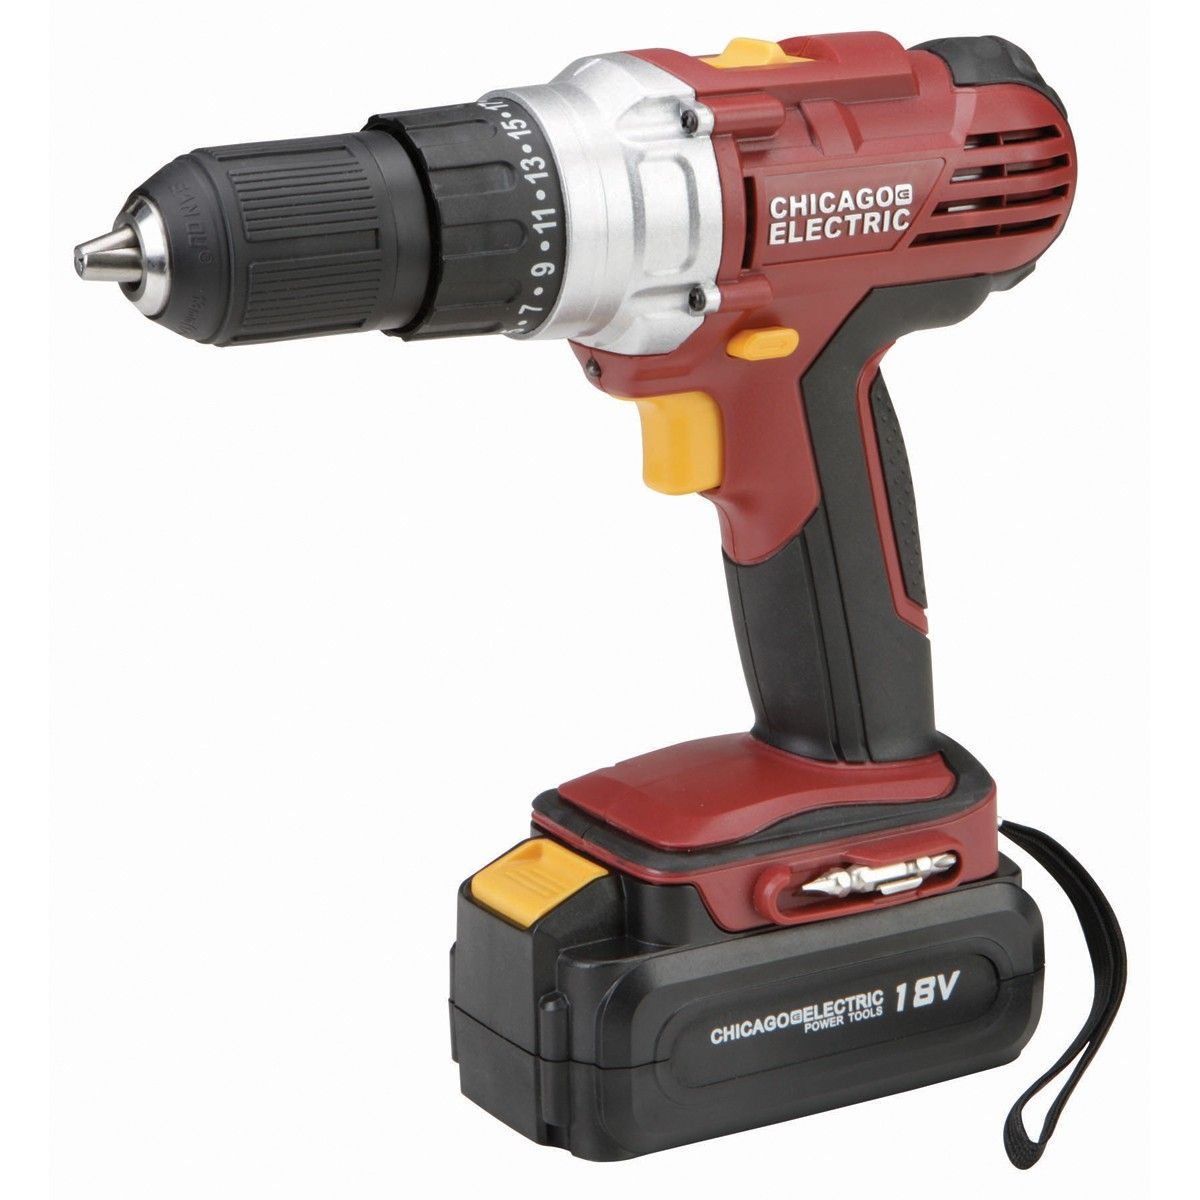 18 volt cordless 12 drilldriver with keyless chuck harbor 18 volt cordless 12 drilldriver with keyless chuck fandeluxe Gallery